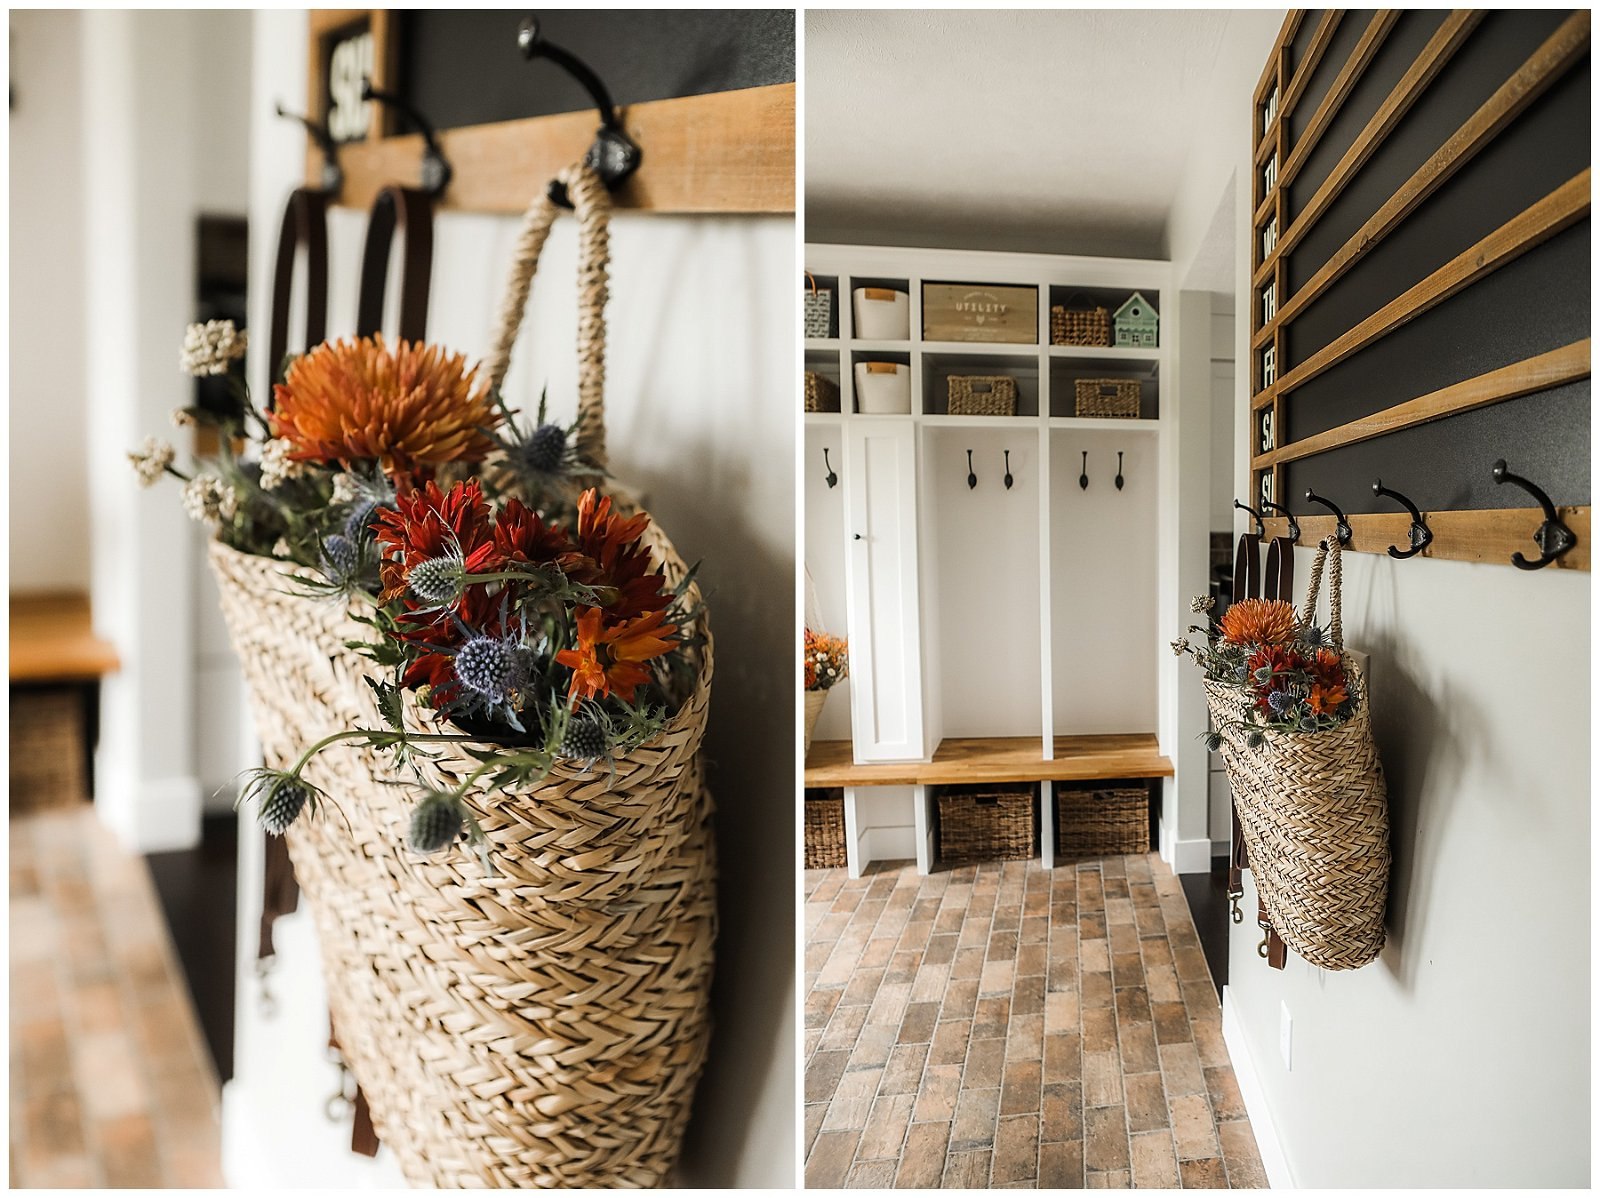 Mudroom renovation ideas